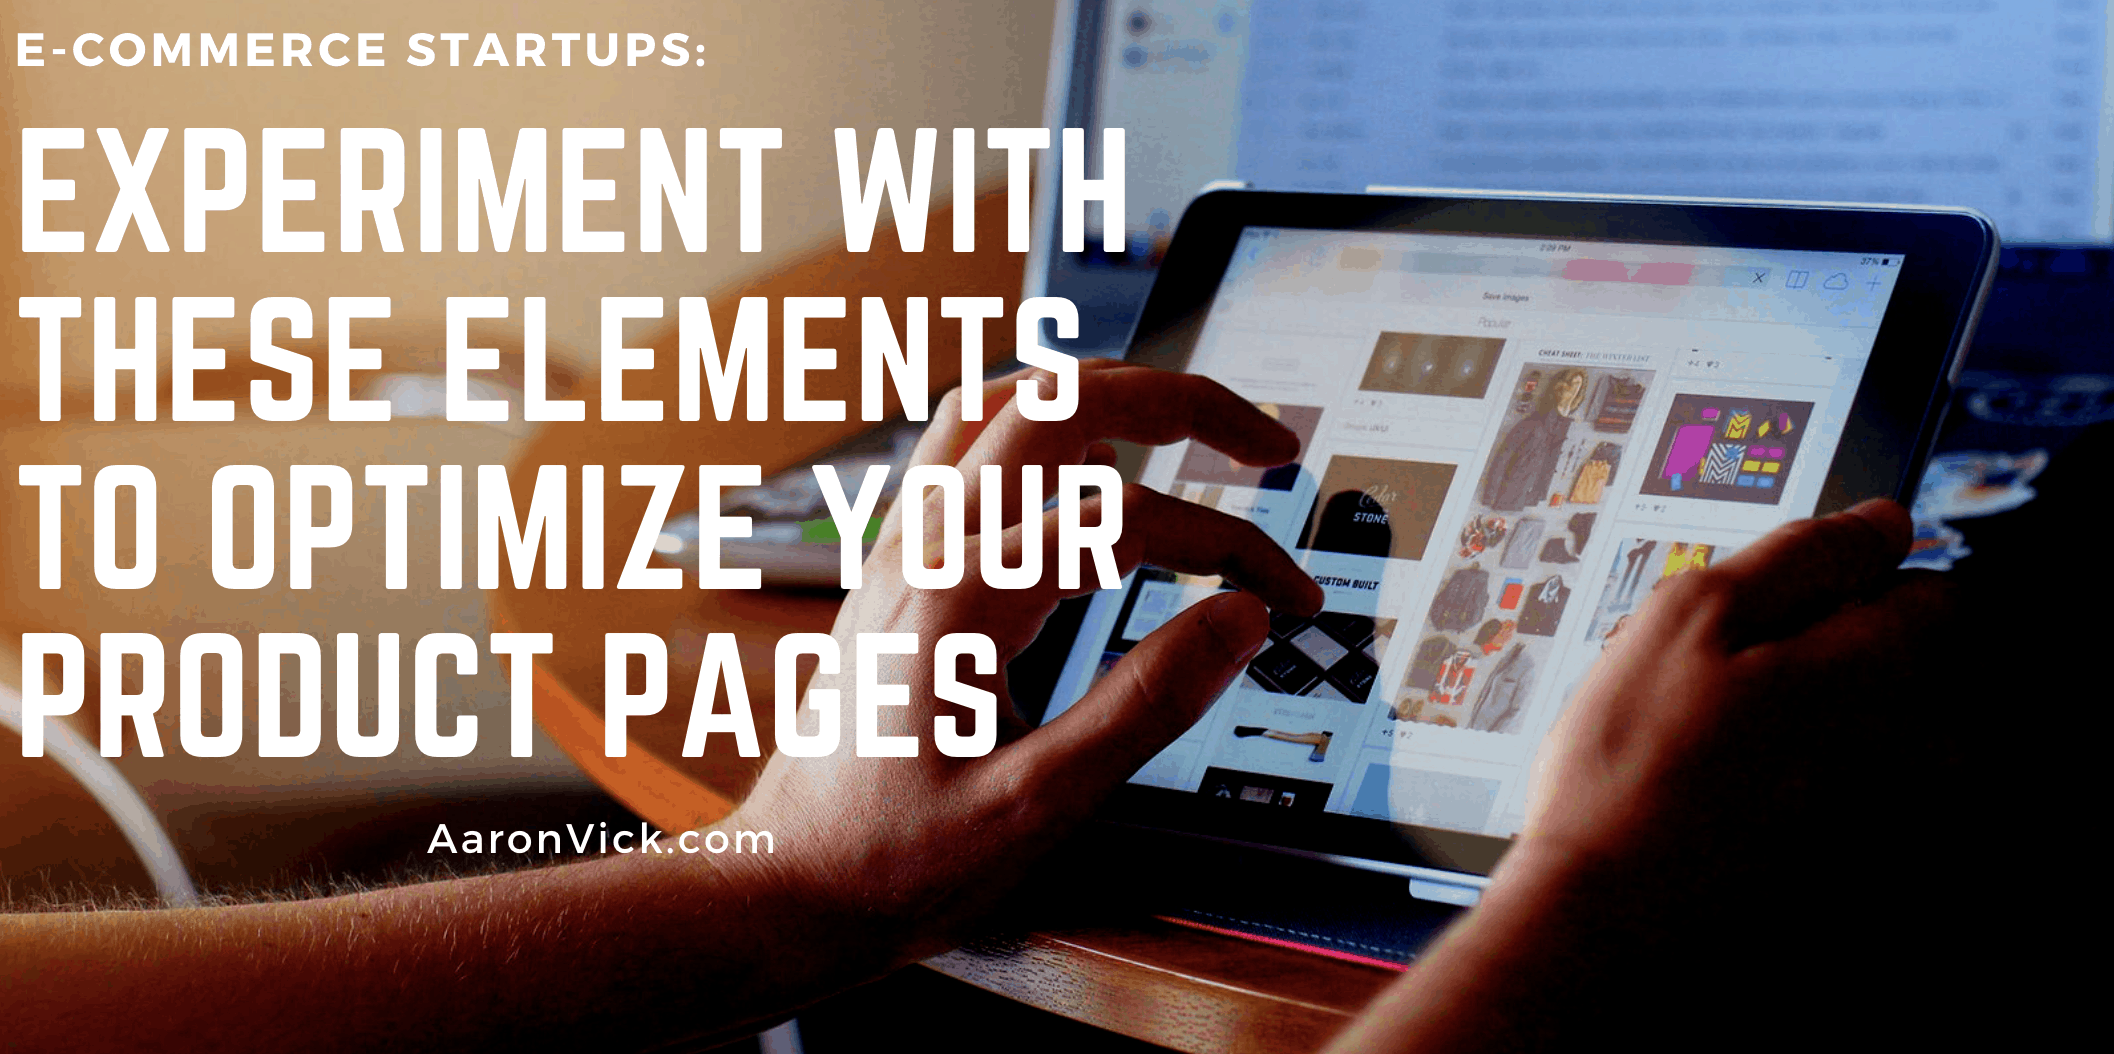 Aaron Vick - Experiment With These Elements to Optimize Your Product Pages